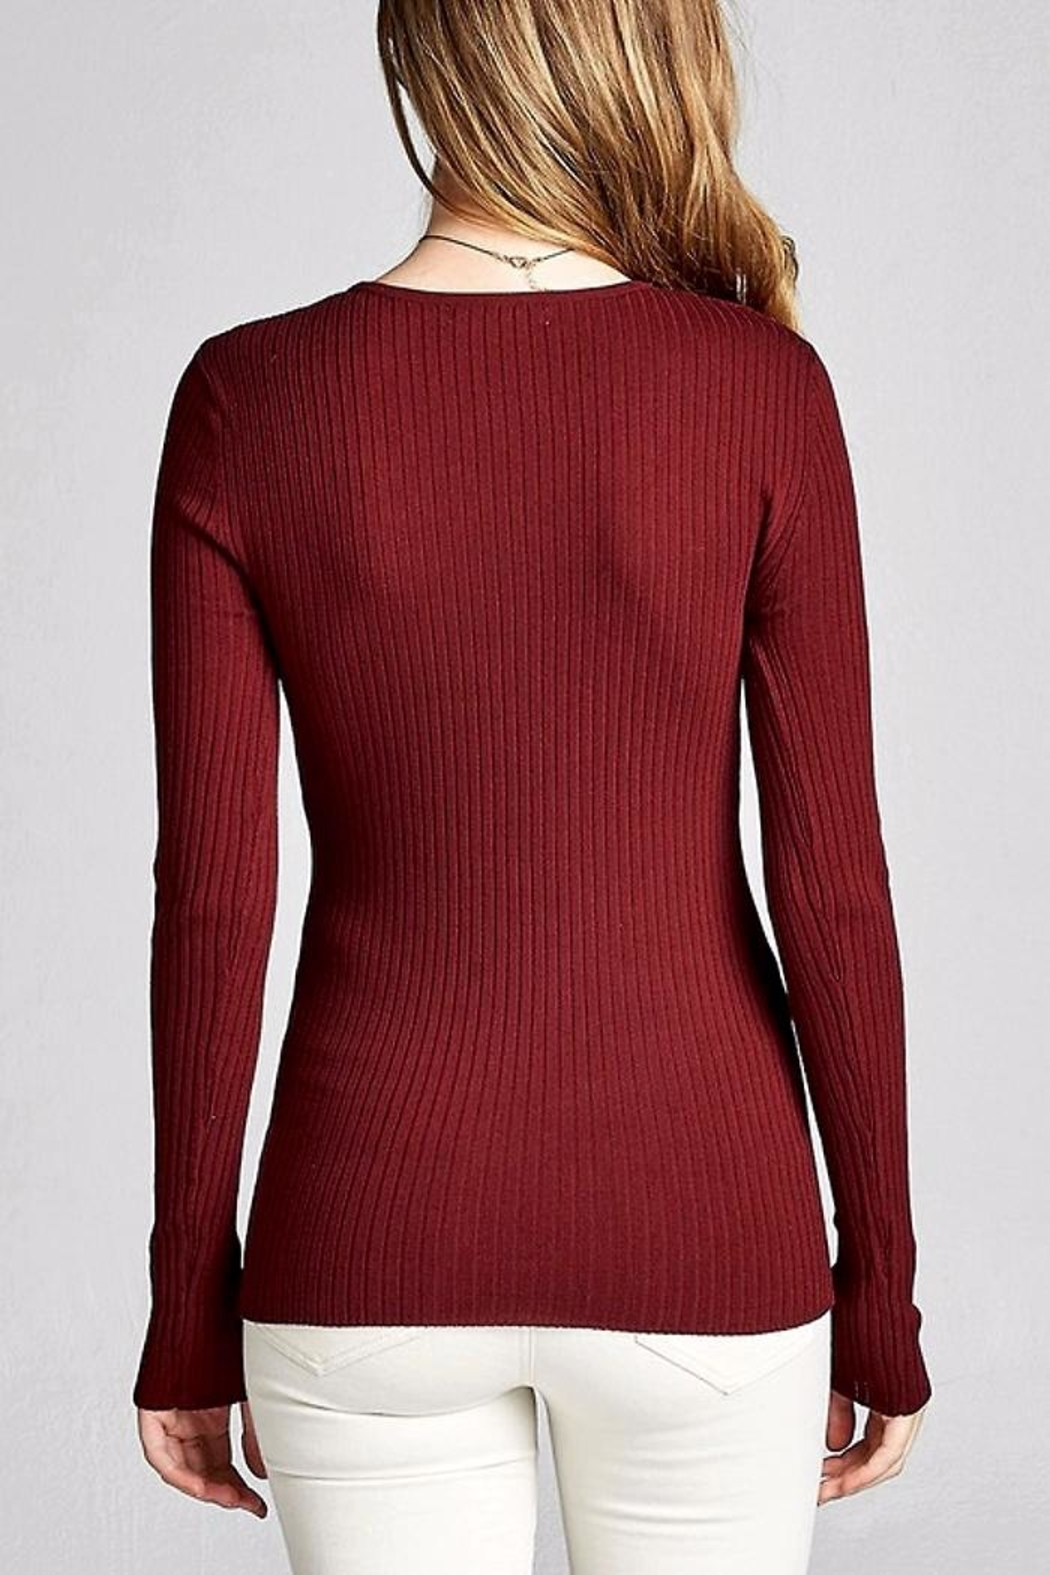 People Outfitter Looking Back Sweater - Front Full Image